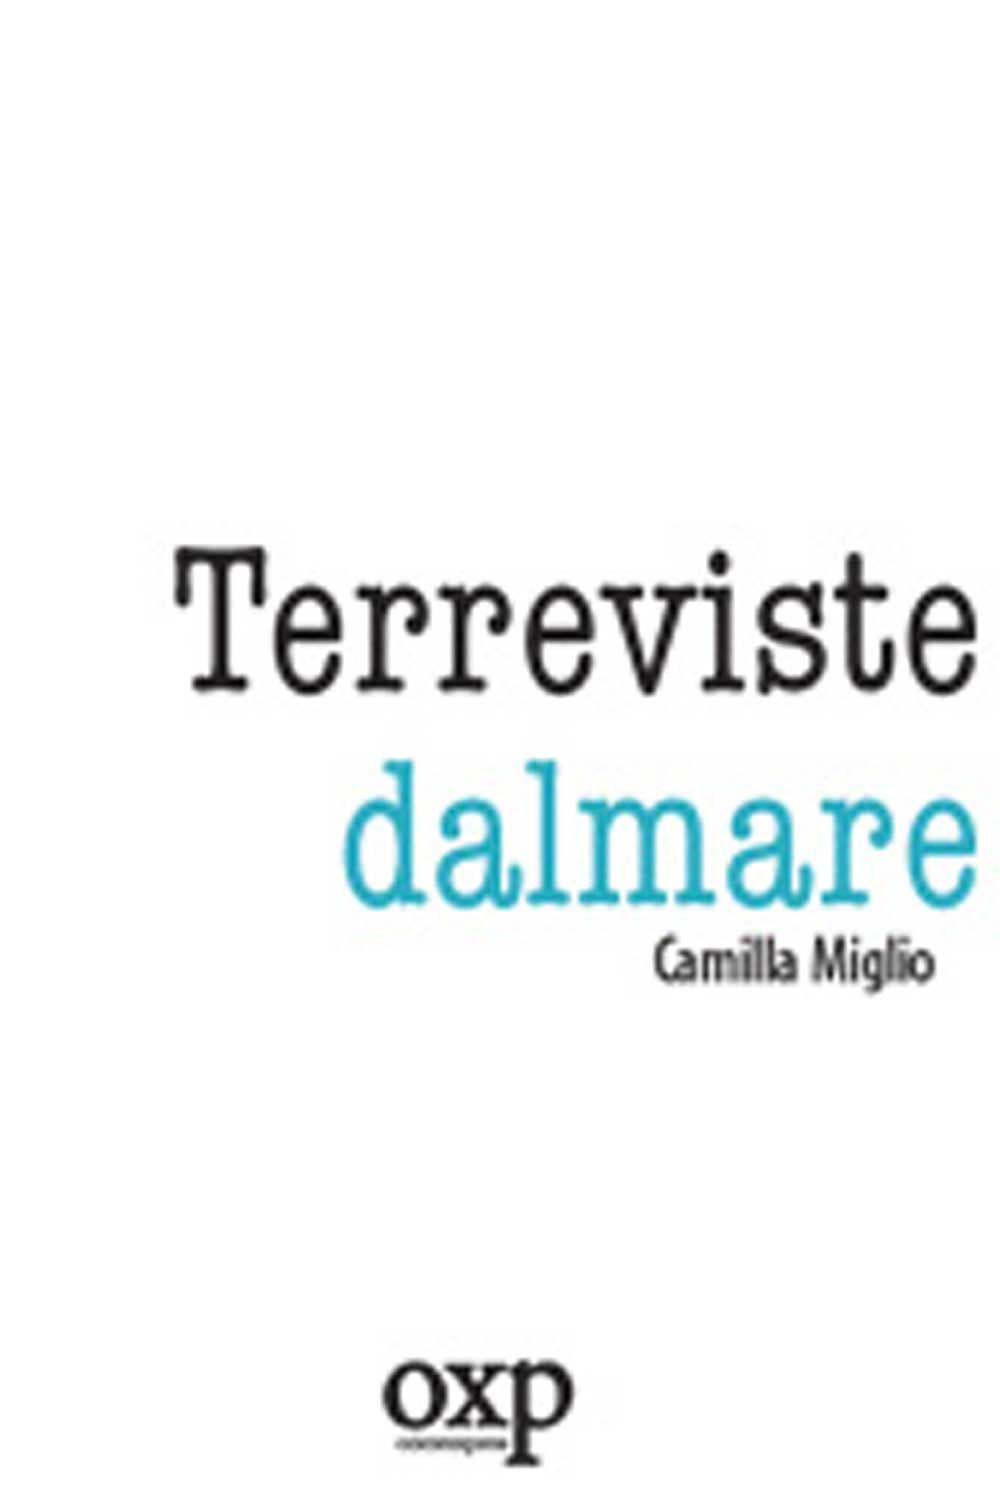 https://www.amazon.it/Terre-viste-mare-Camilla-Miglio/dp/8895007077